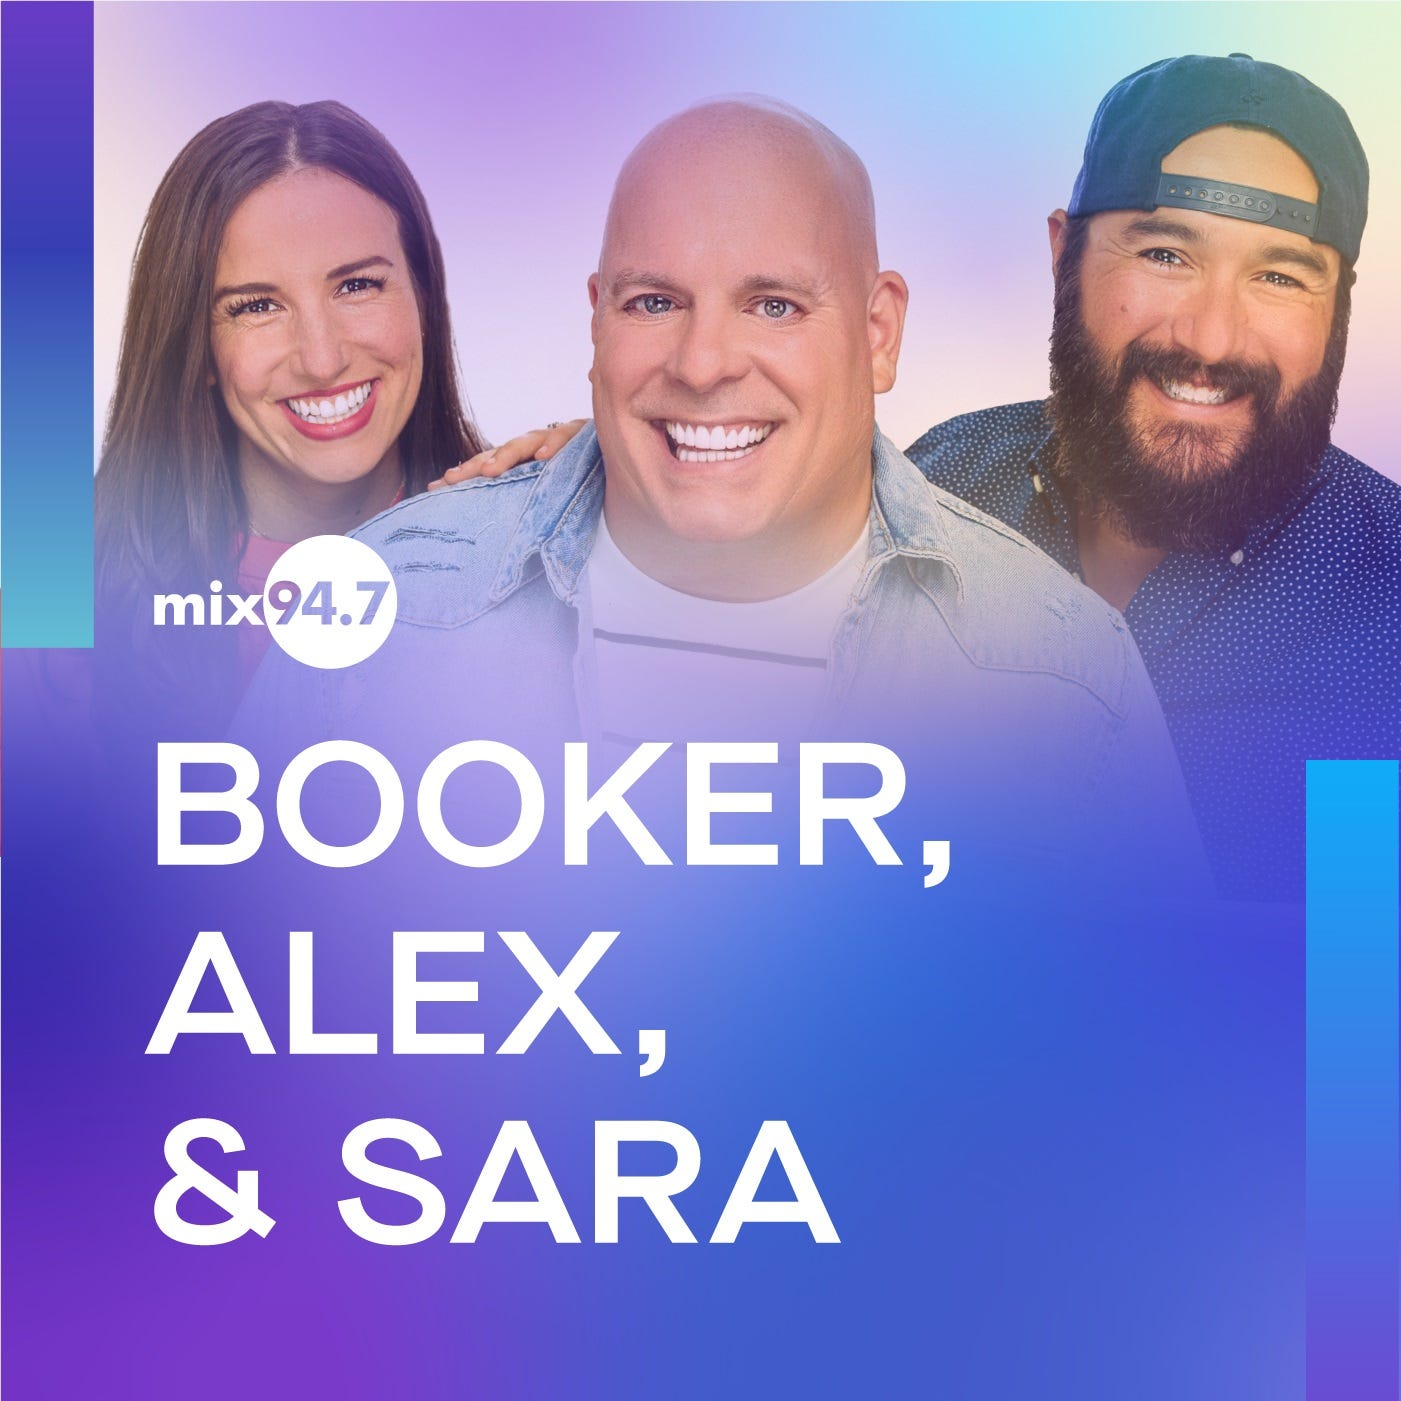 Booker, Alex and Sara - Daily Audio